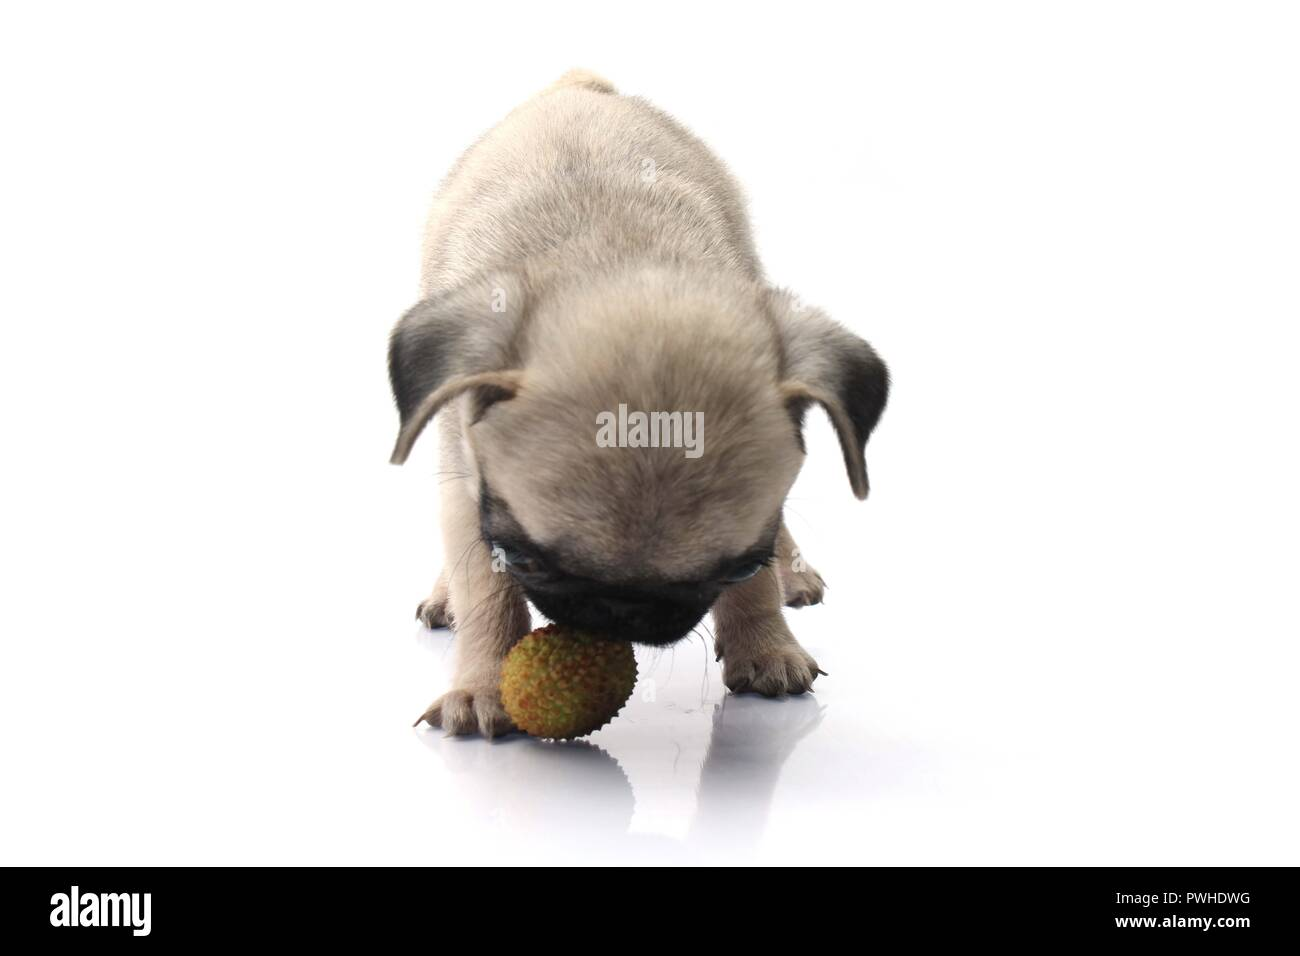 Cute Pug Dog Plays With Ball Isolated On White Background. - Stock Image